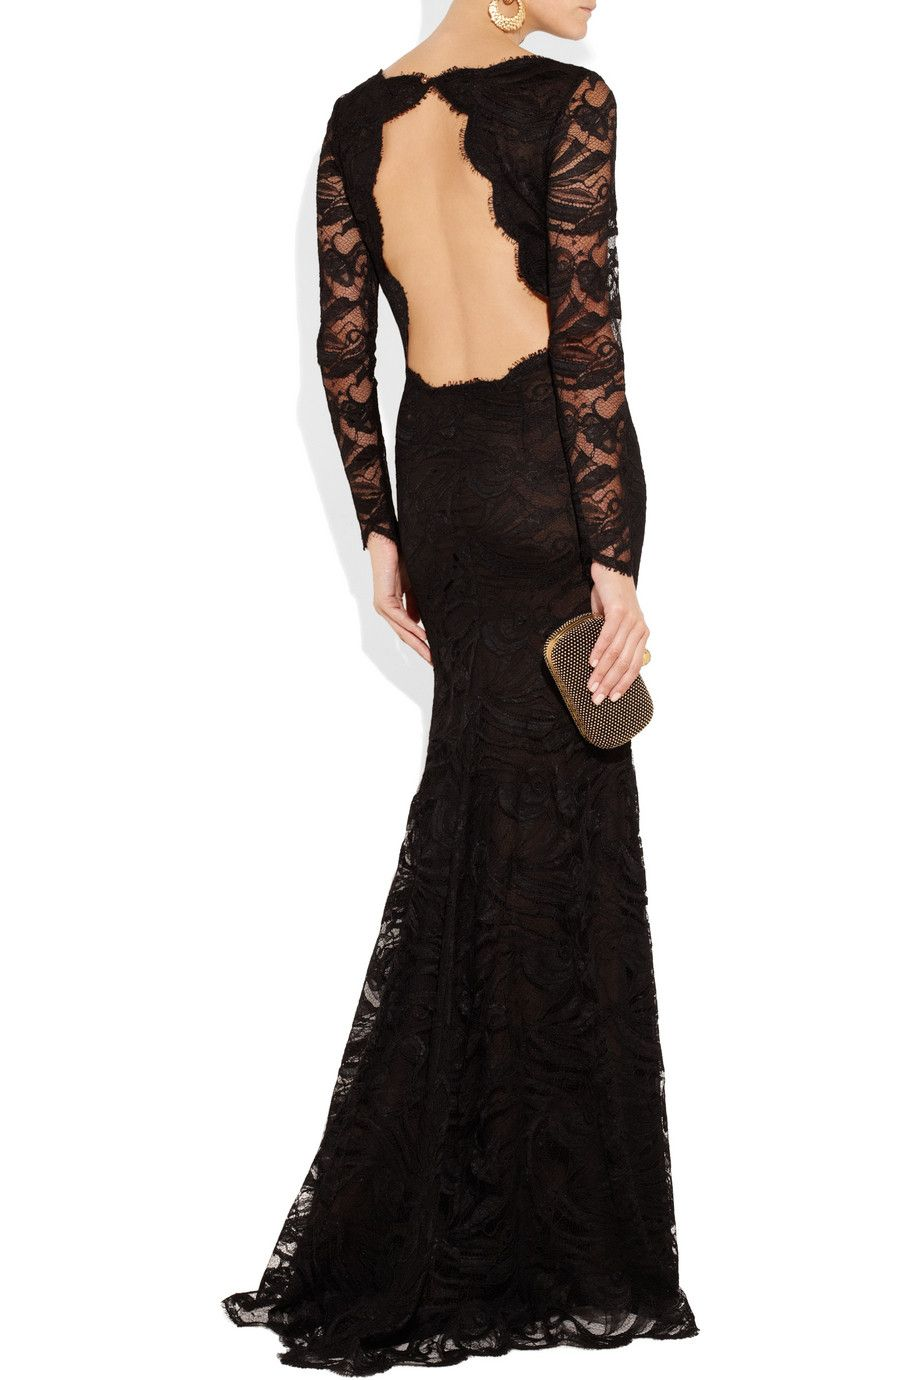 Emilio pucci backless guipure lace gown back simply amazing